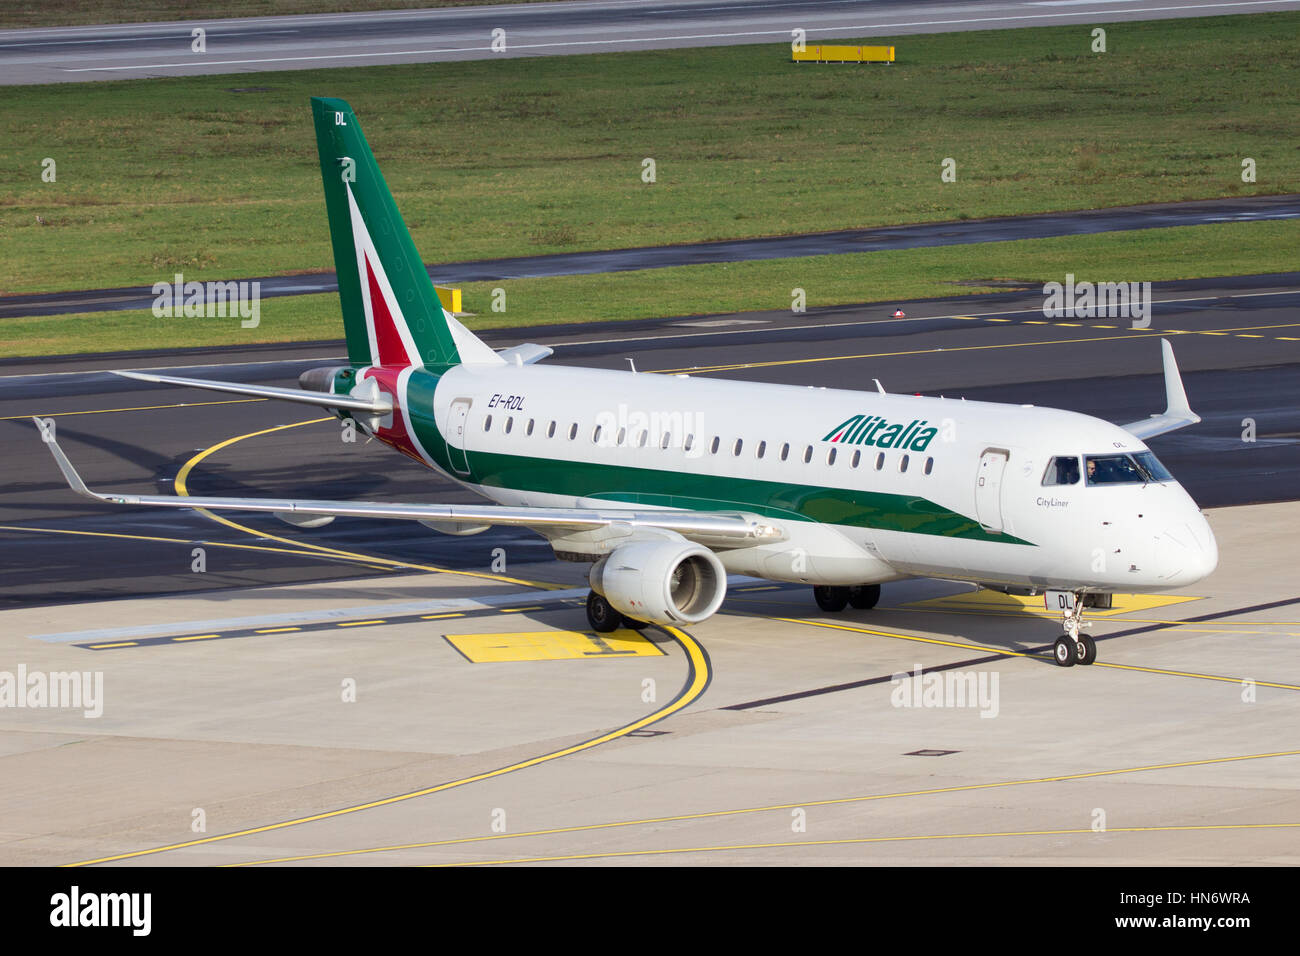 DUSSELDORF, GERMANY - DEC 21, 2015: Alitalia Cityliner Embraer ERJ-175STD taxiing after landing at Dusseldorf Airport - Stock Image